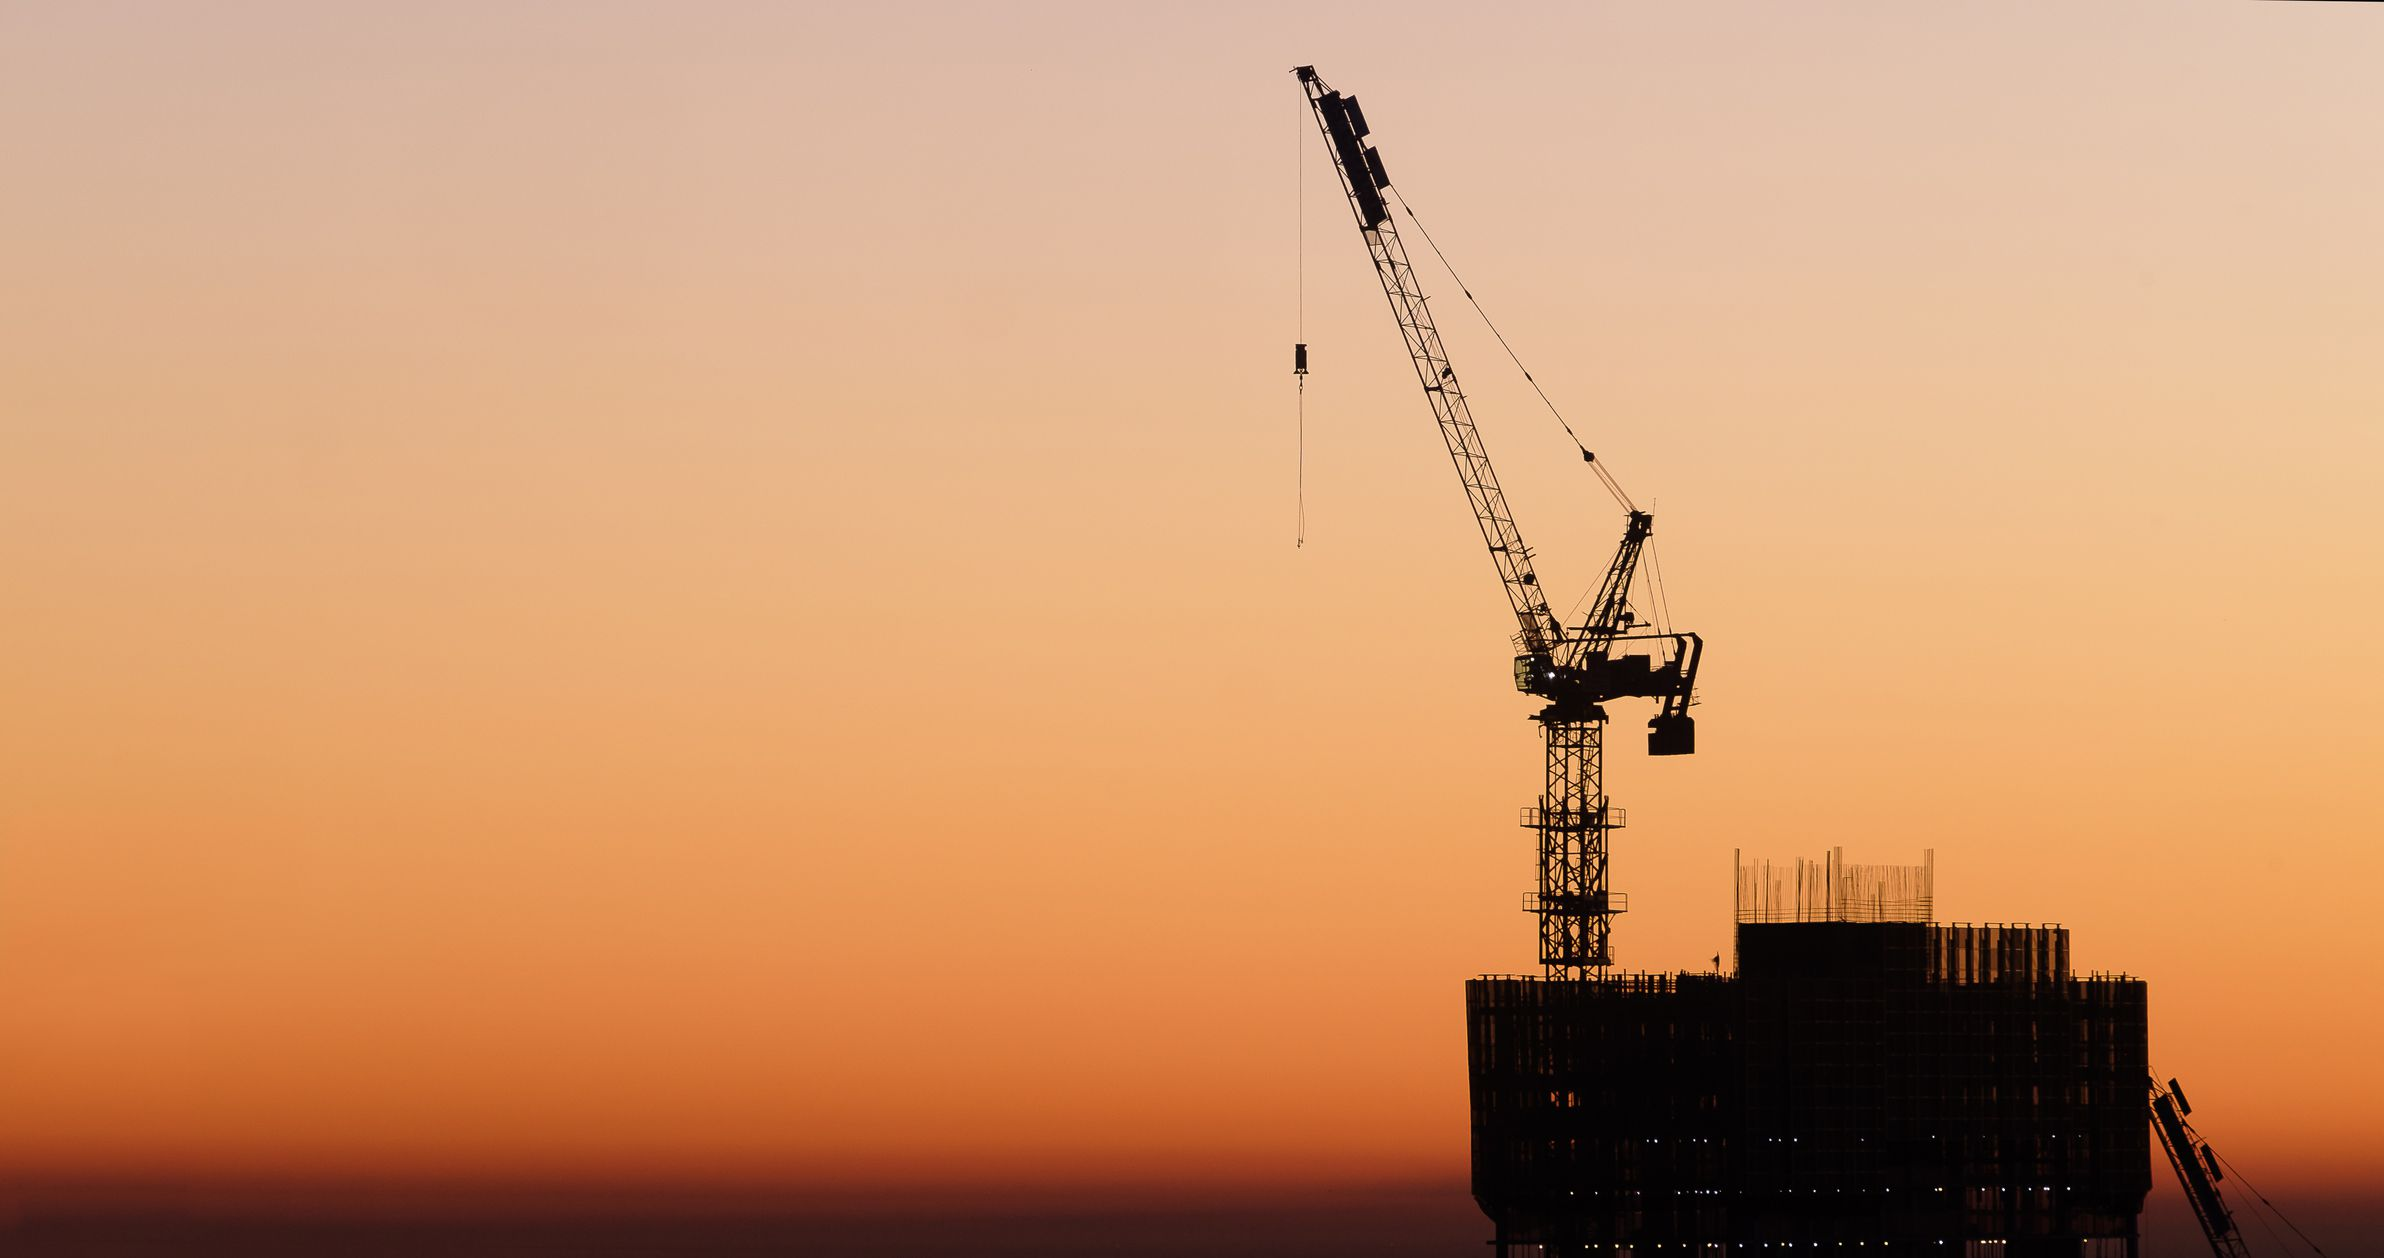 New York State Crane Licensing Requirements